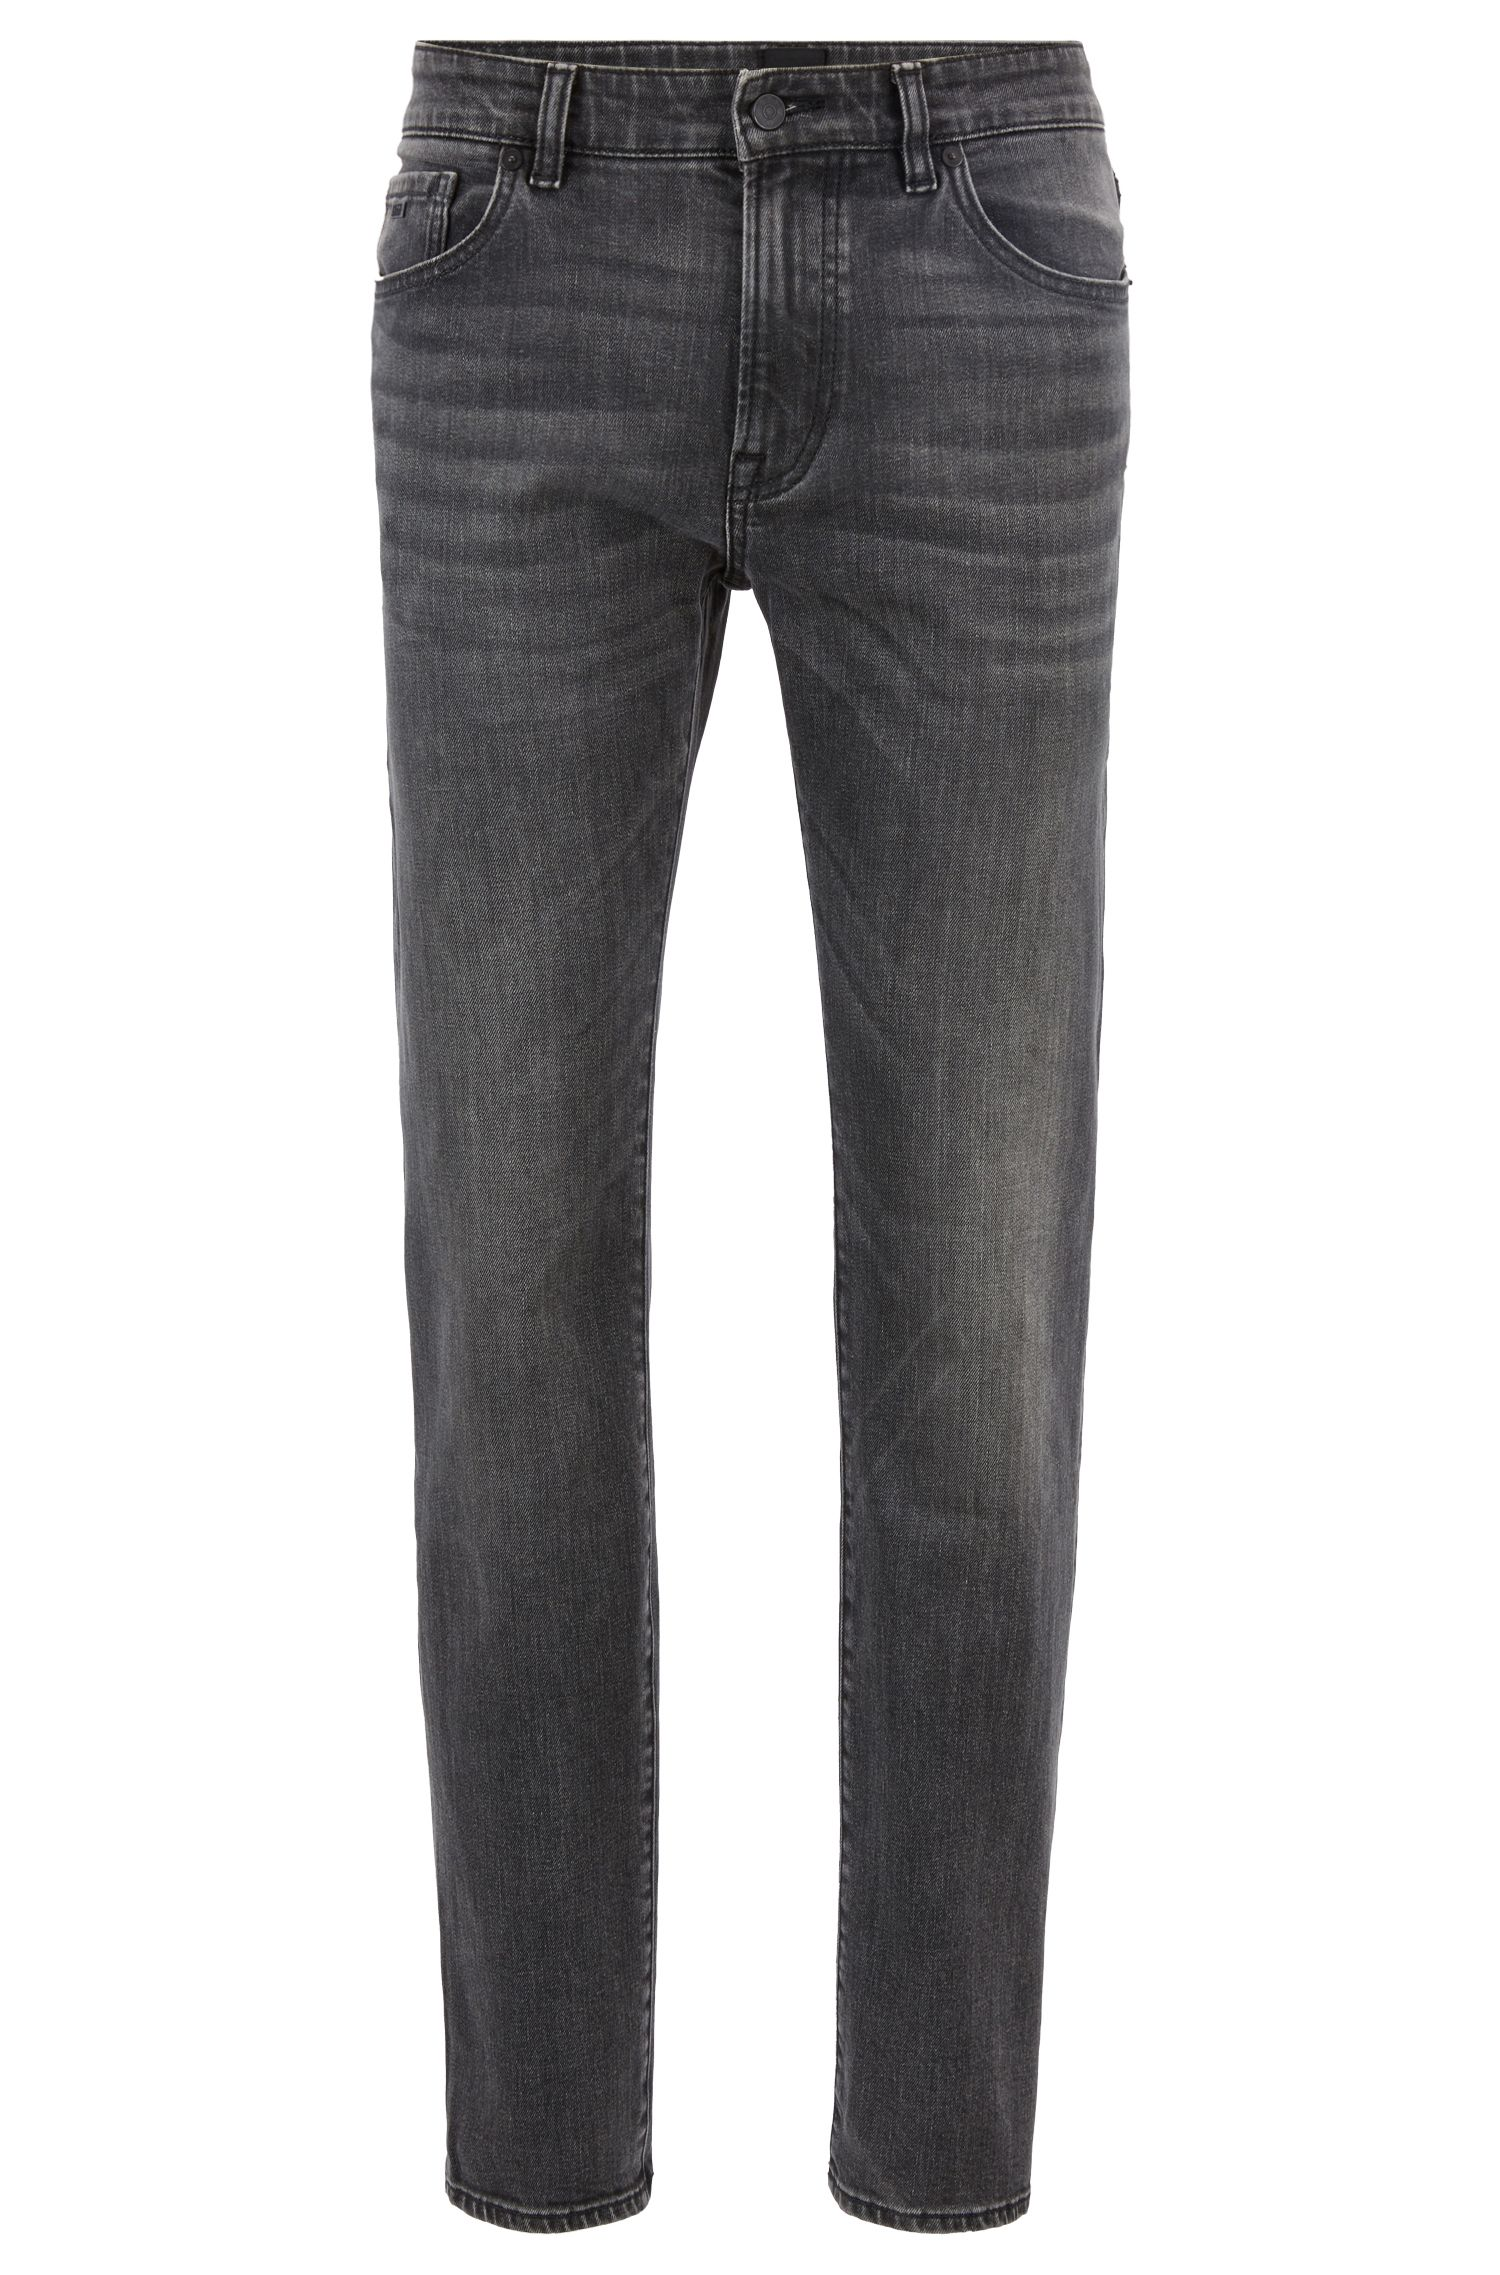 Jean Regular Fit en denim stretch noir, Anthracite